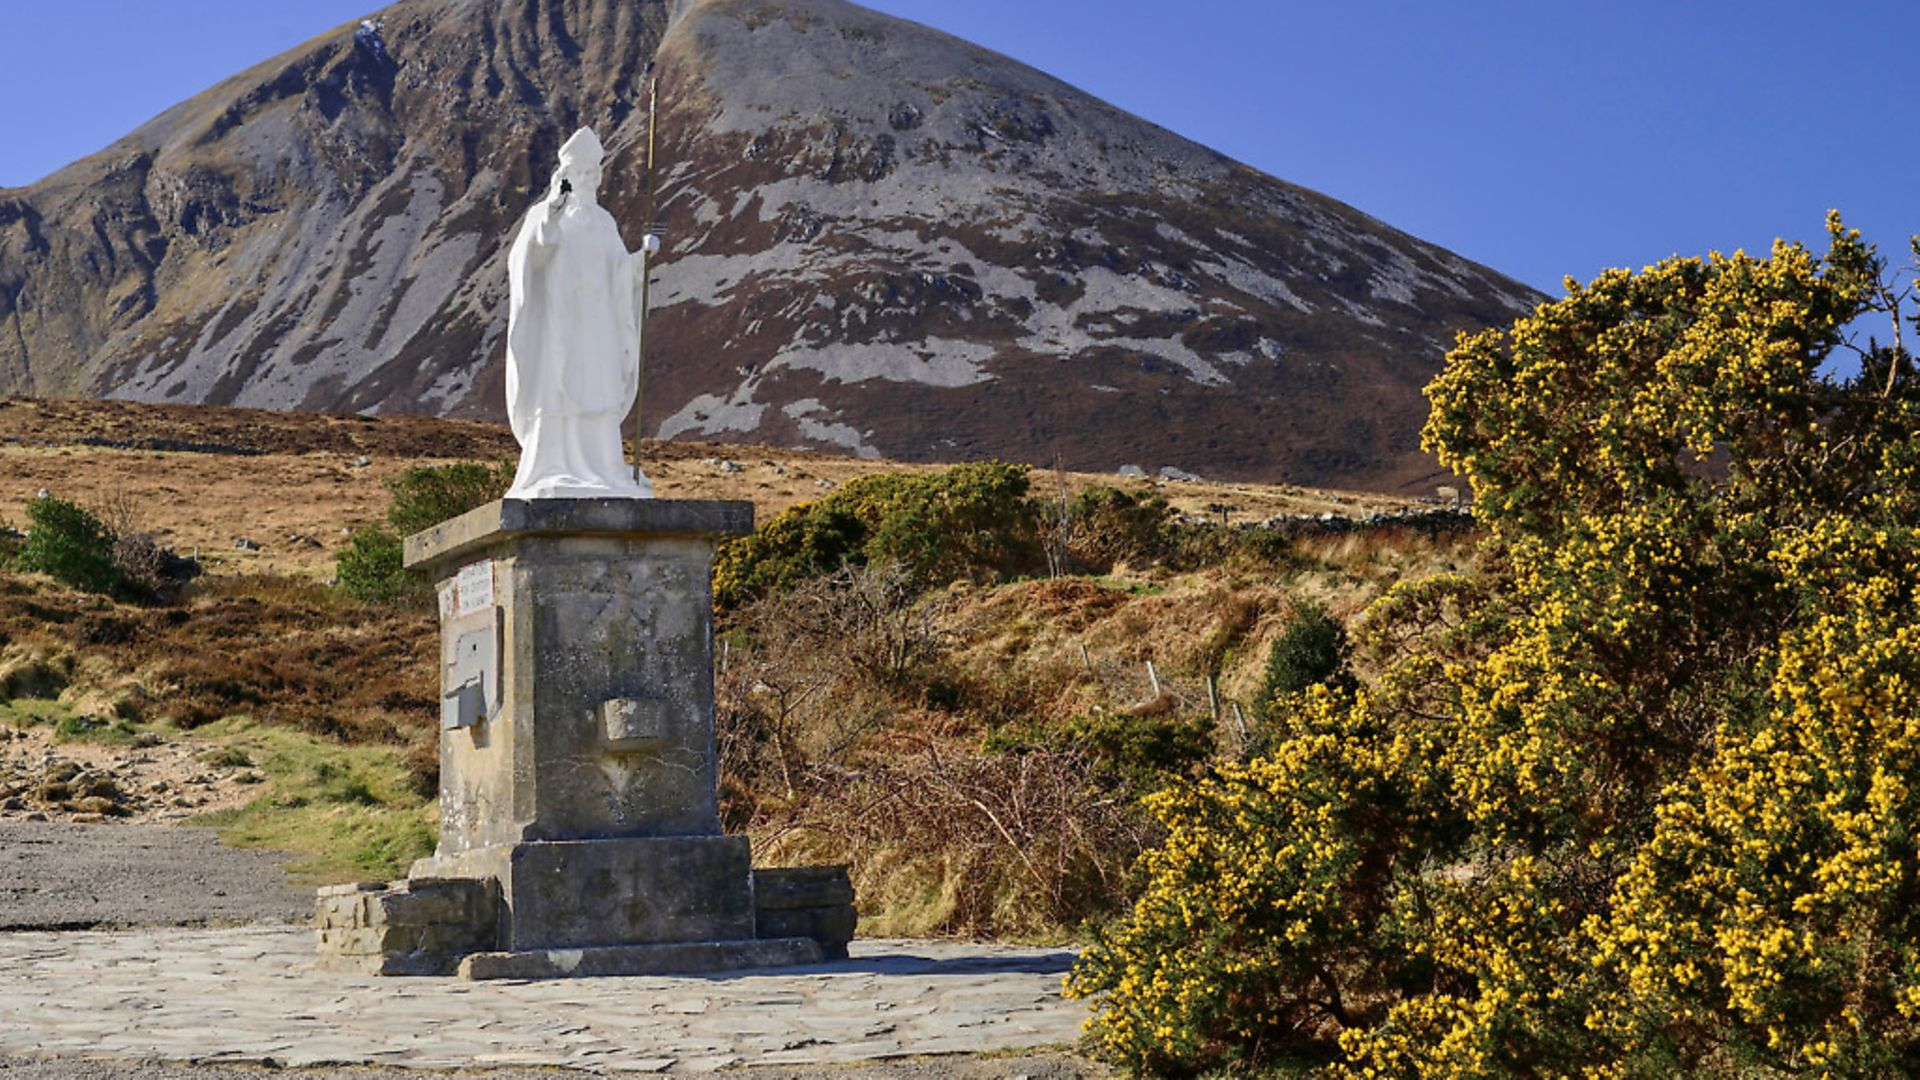 Ireland, County Mayo, Murrisk. The holy pilgrimage mountain of Croagh Patrick with a statue of Saint Patrick in the foreground. Photo: Eye Ubiquitous/Universal Images Group - Credit: Universal Images Group via Getty